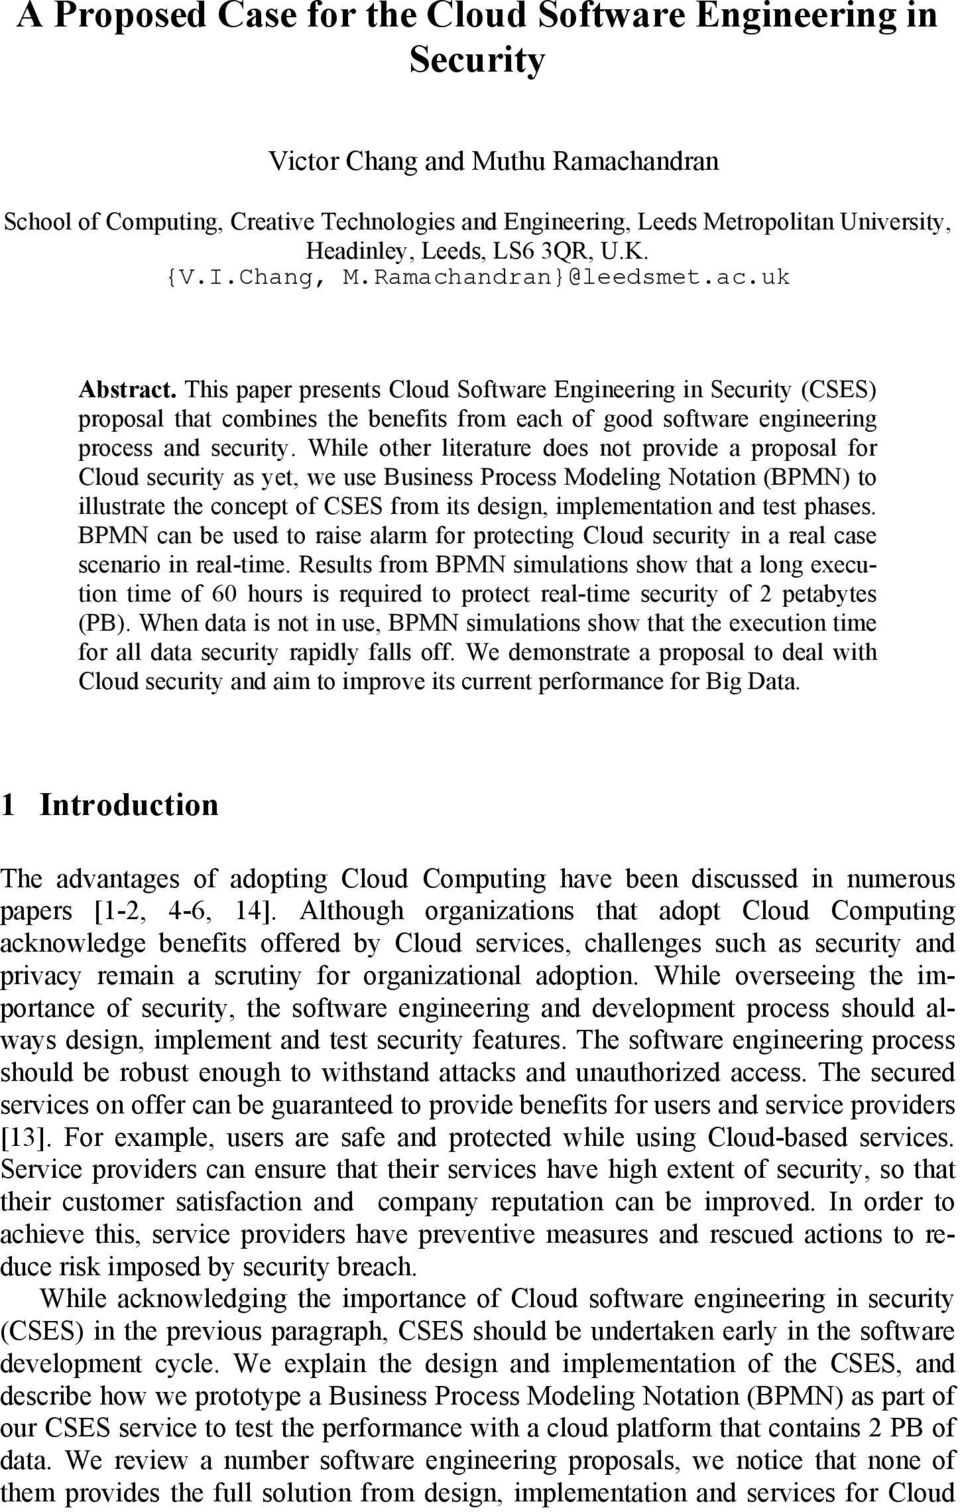 This paper presents Cloud Software Engineering in Security (CSES) proposal that combines the benefits from each of good software engineering process and security.